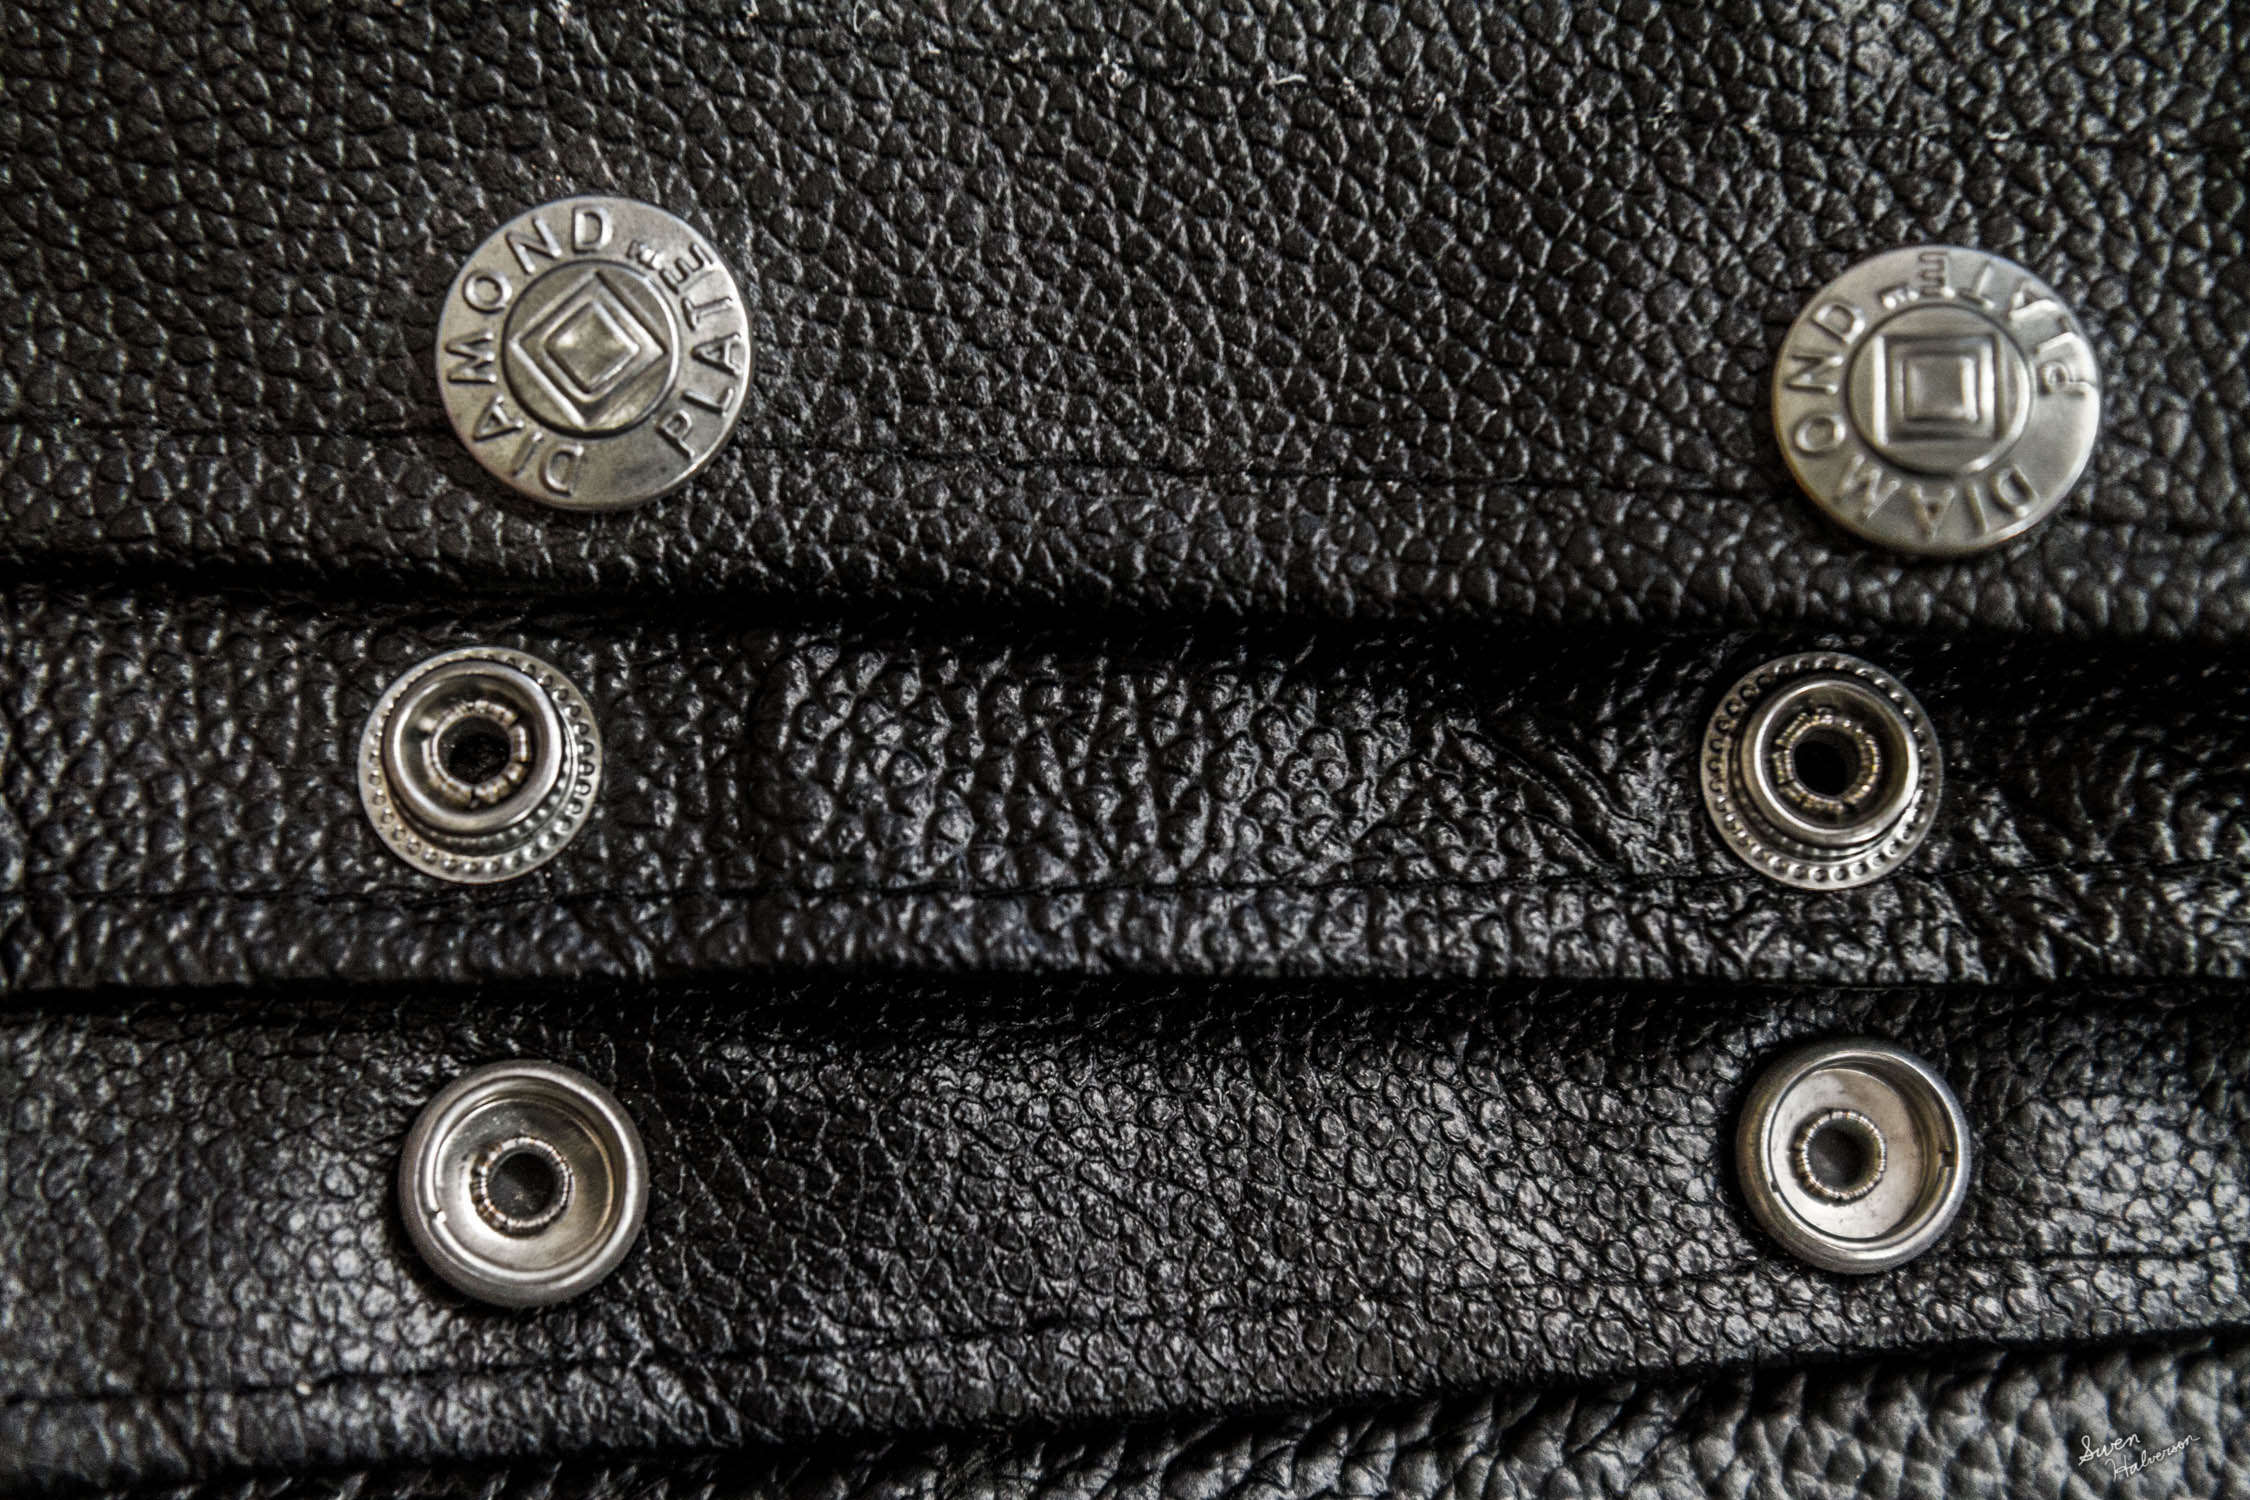 Theme: Snap Title: Snaps On Leather